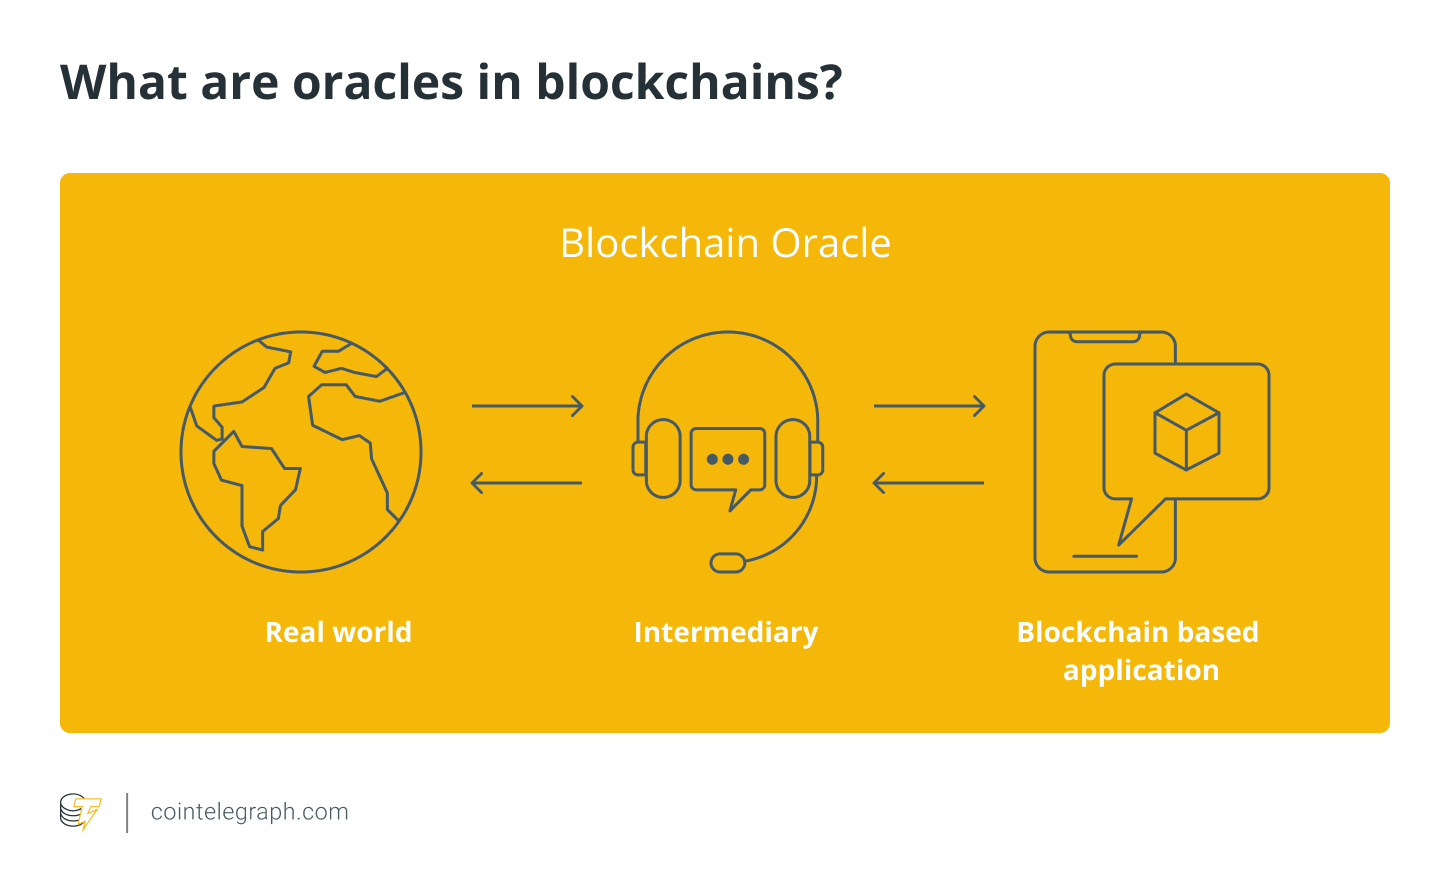 What are oracles in blockchains?